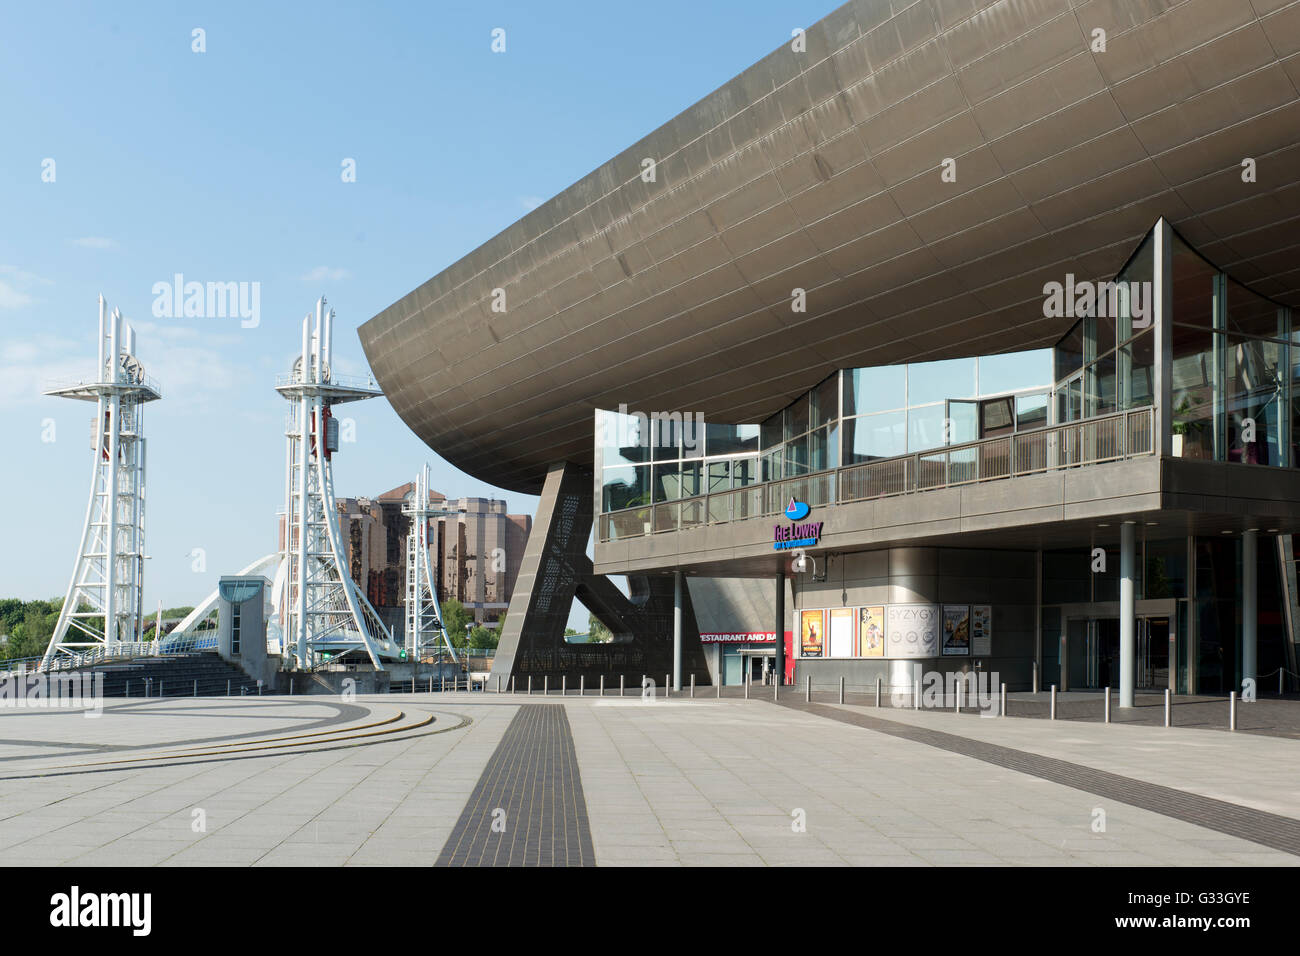 The Lorwy Arts Centre and complex in Salford Quays by the Manchester Ship Canal near Media City. - Stock Image